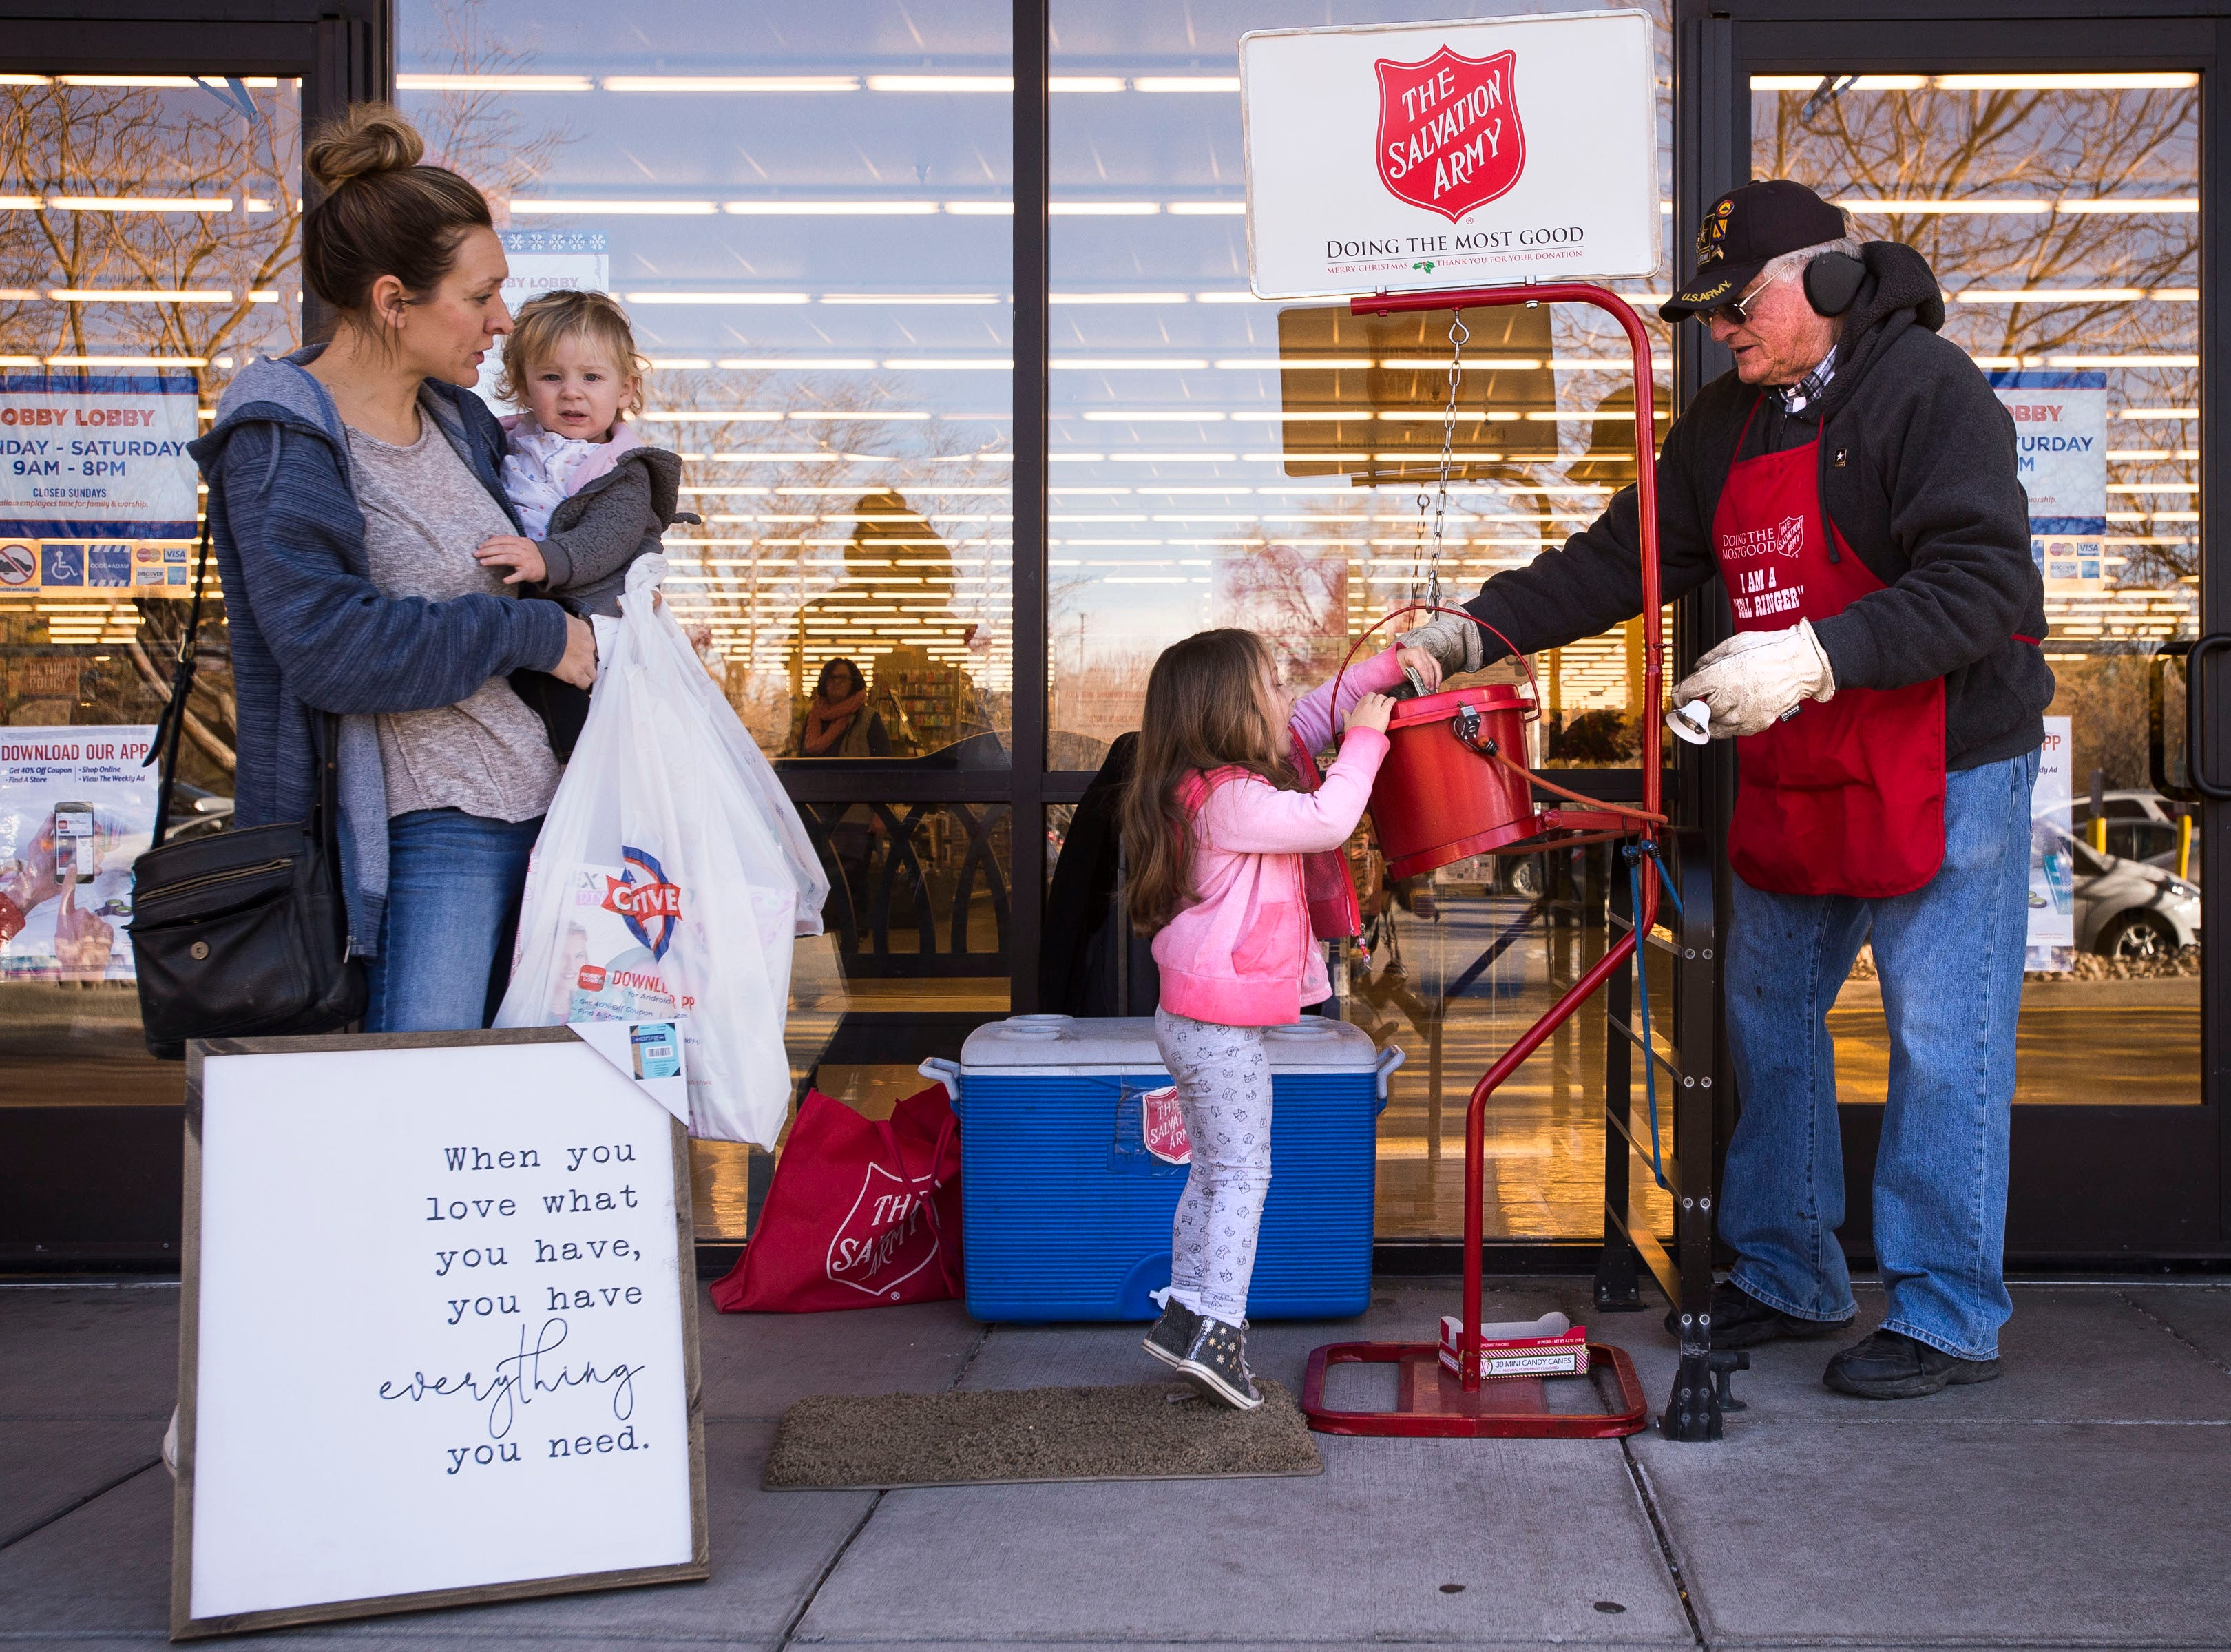 Salvation Army bell ringer Robert Thompson tips the bucket down a bit for 3-year-old Emerson Fry as Fry's mother, Taylor, and 1-year-old sister Georgia stand by on Friday, Dec. 21, 2018, in front of the Hobby Lobby on South College Avenue in Fort Collins, Colo.